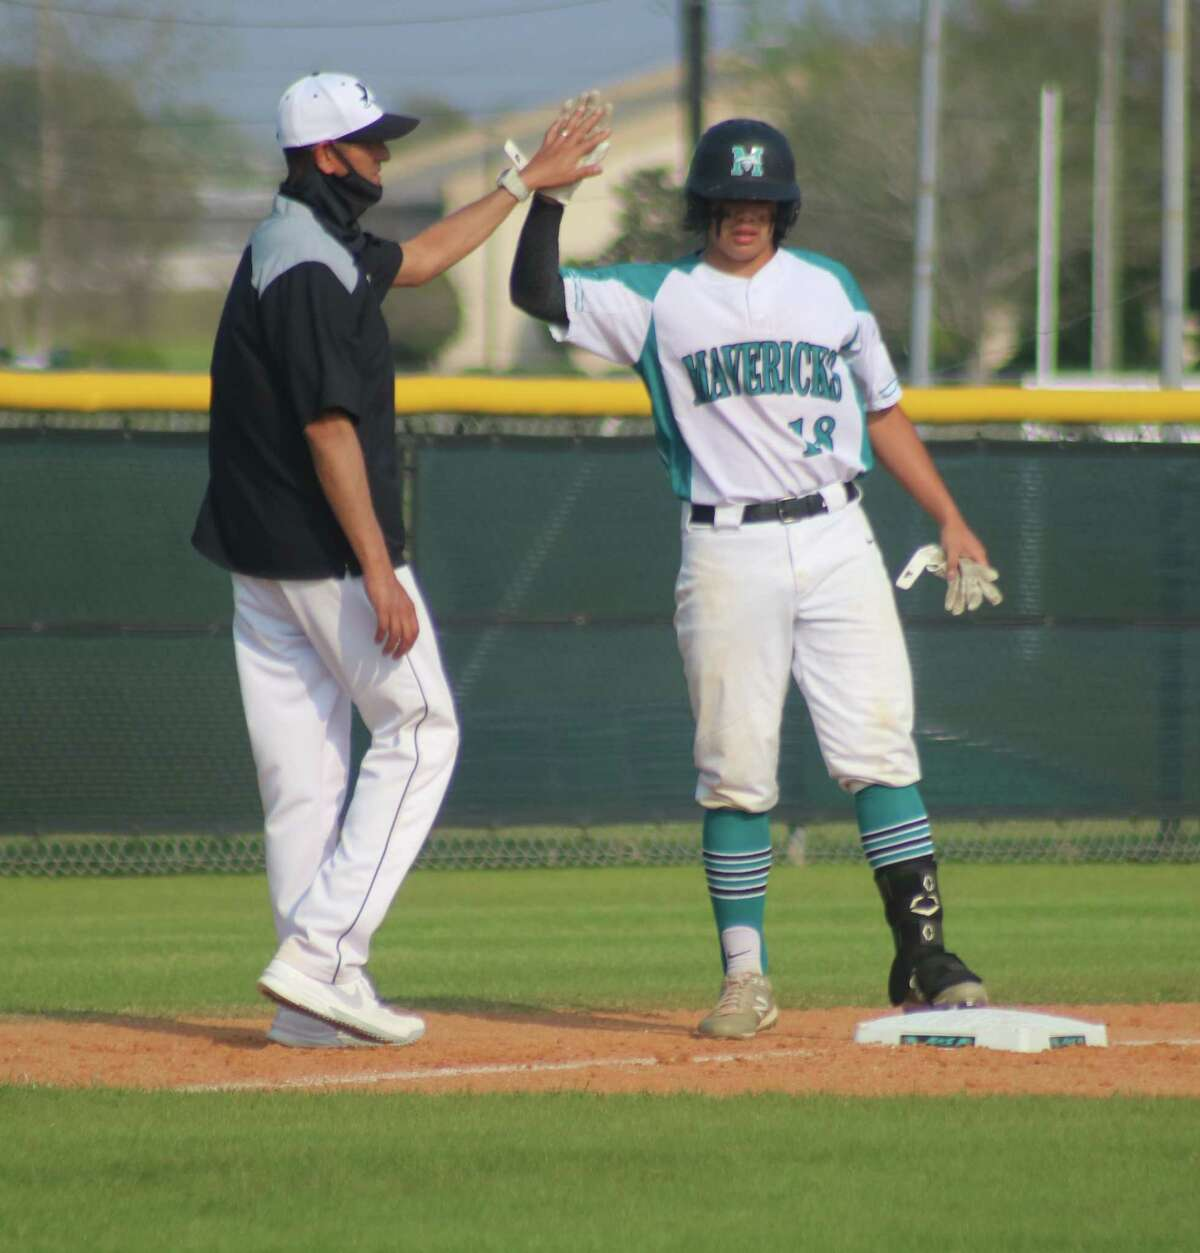 Pasadena Memorial head coach Terry Garza greets Francisco Chavez at third base after clouting a well-hit ball in a district game versus Rayburn. The Mavs will hit the meat of April's action with a four-game winning streak.